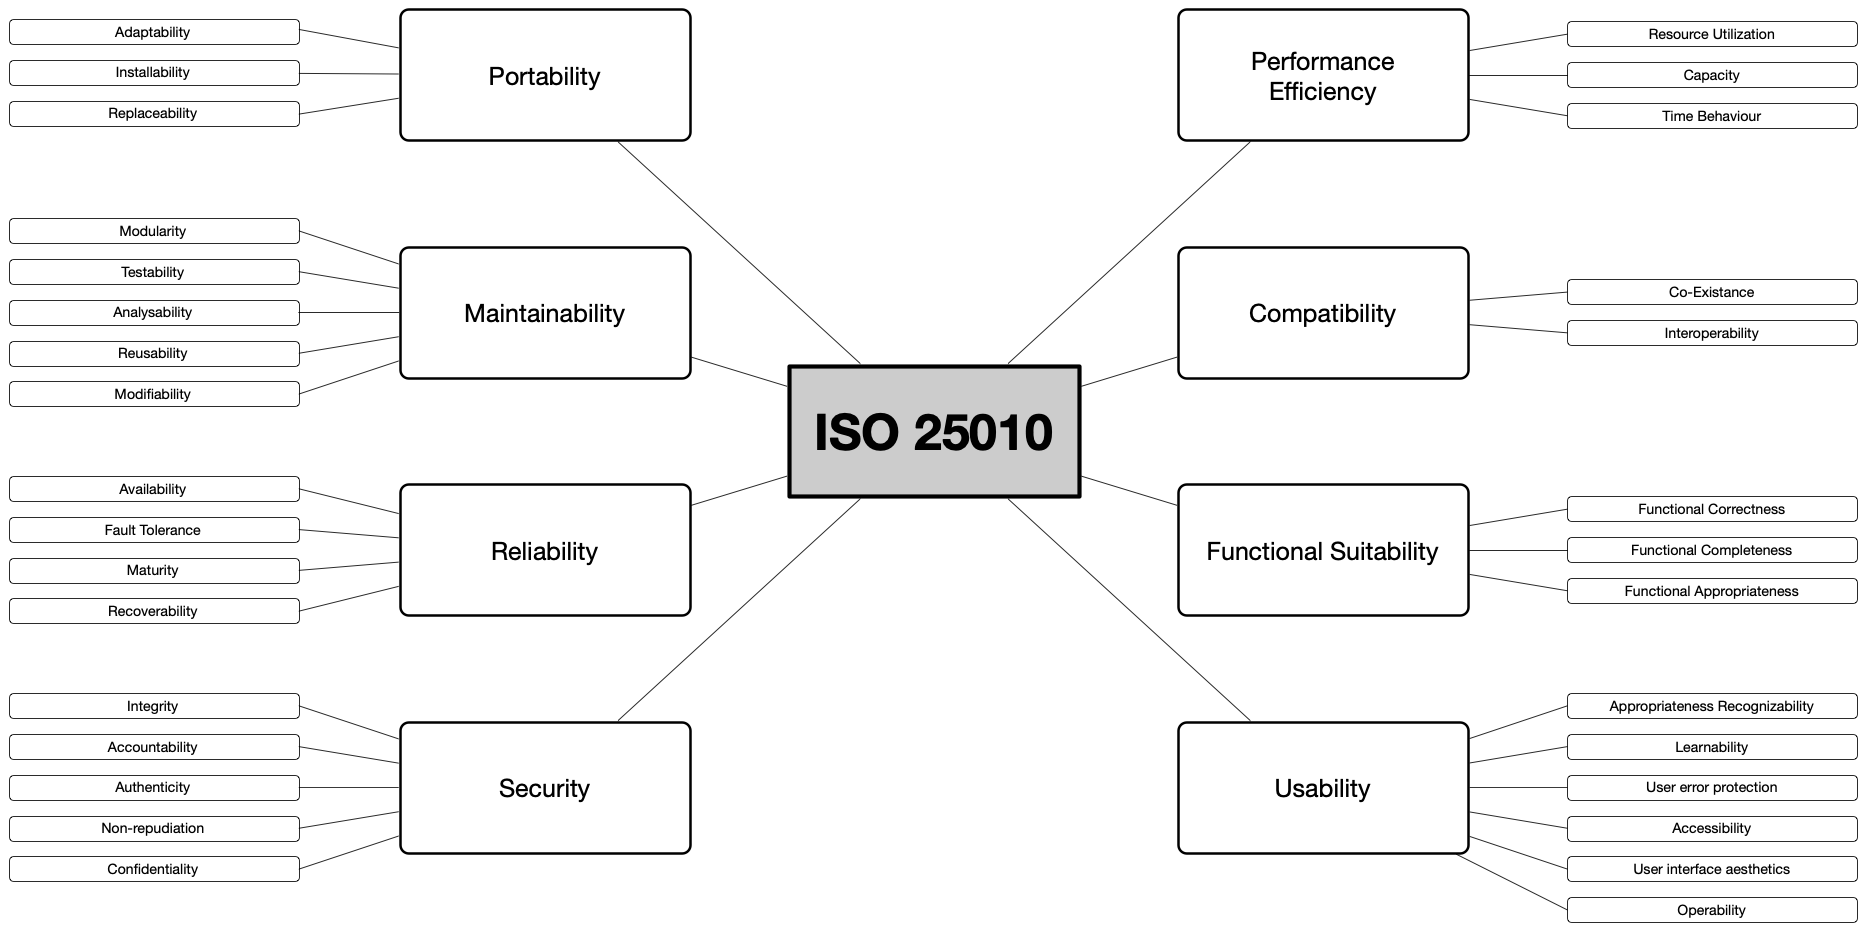 ISO/IEC 25010 as a quality model